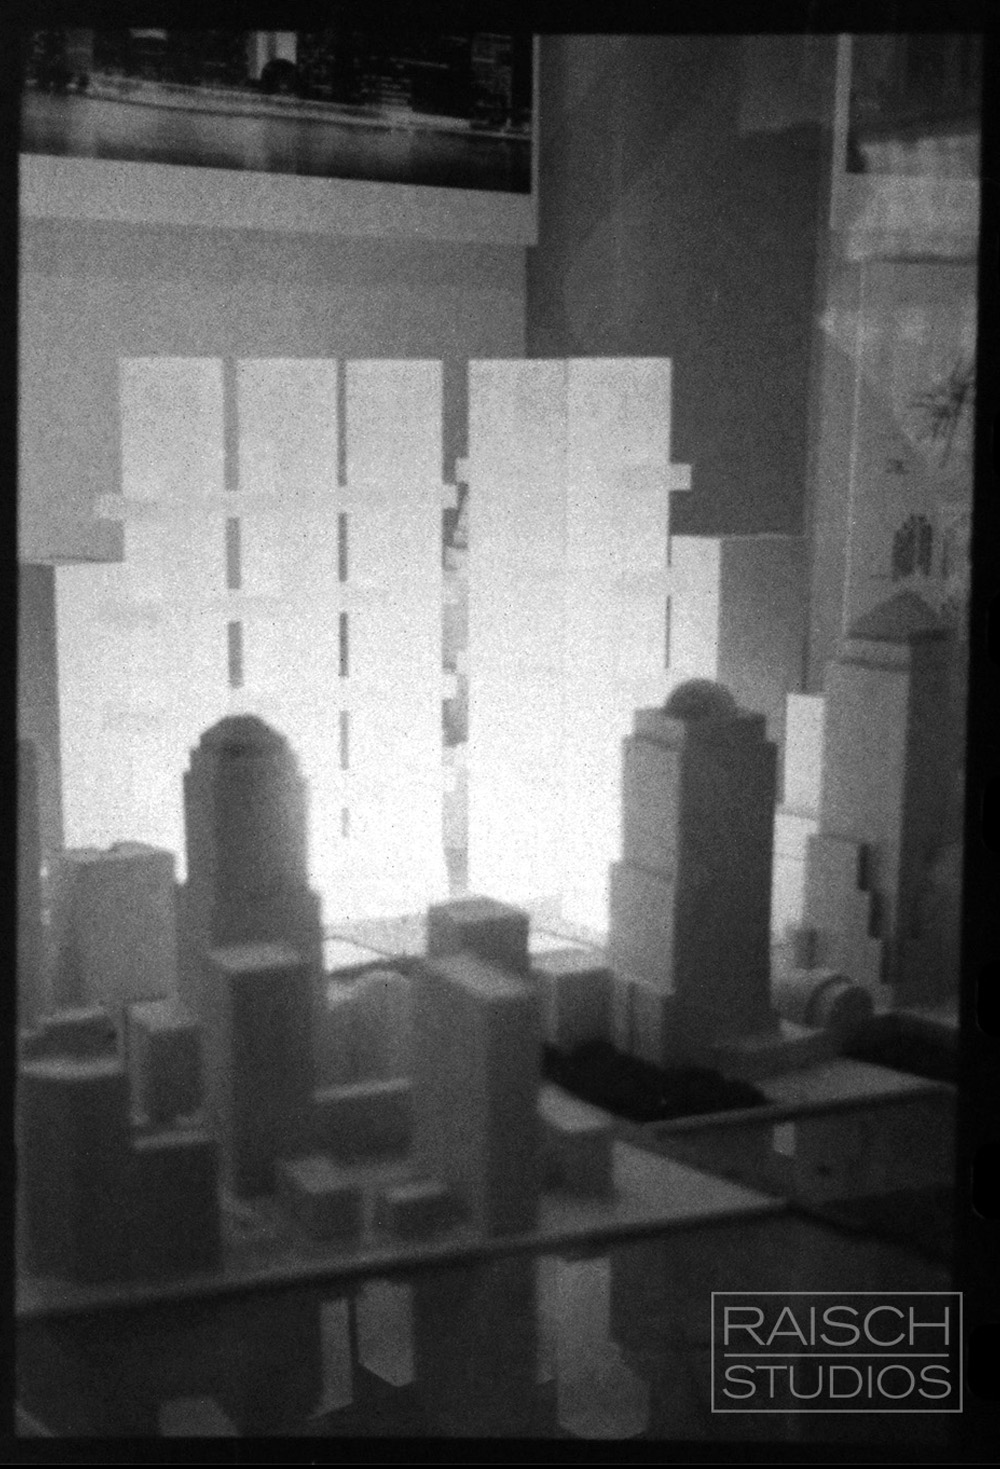 Meier, Eisenman, Gwathmey and Holl: WTC Proposal